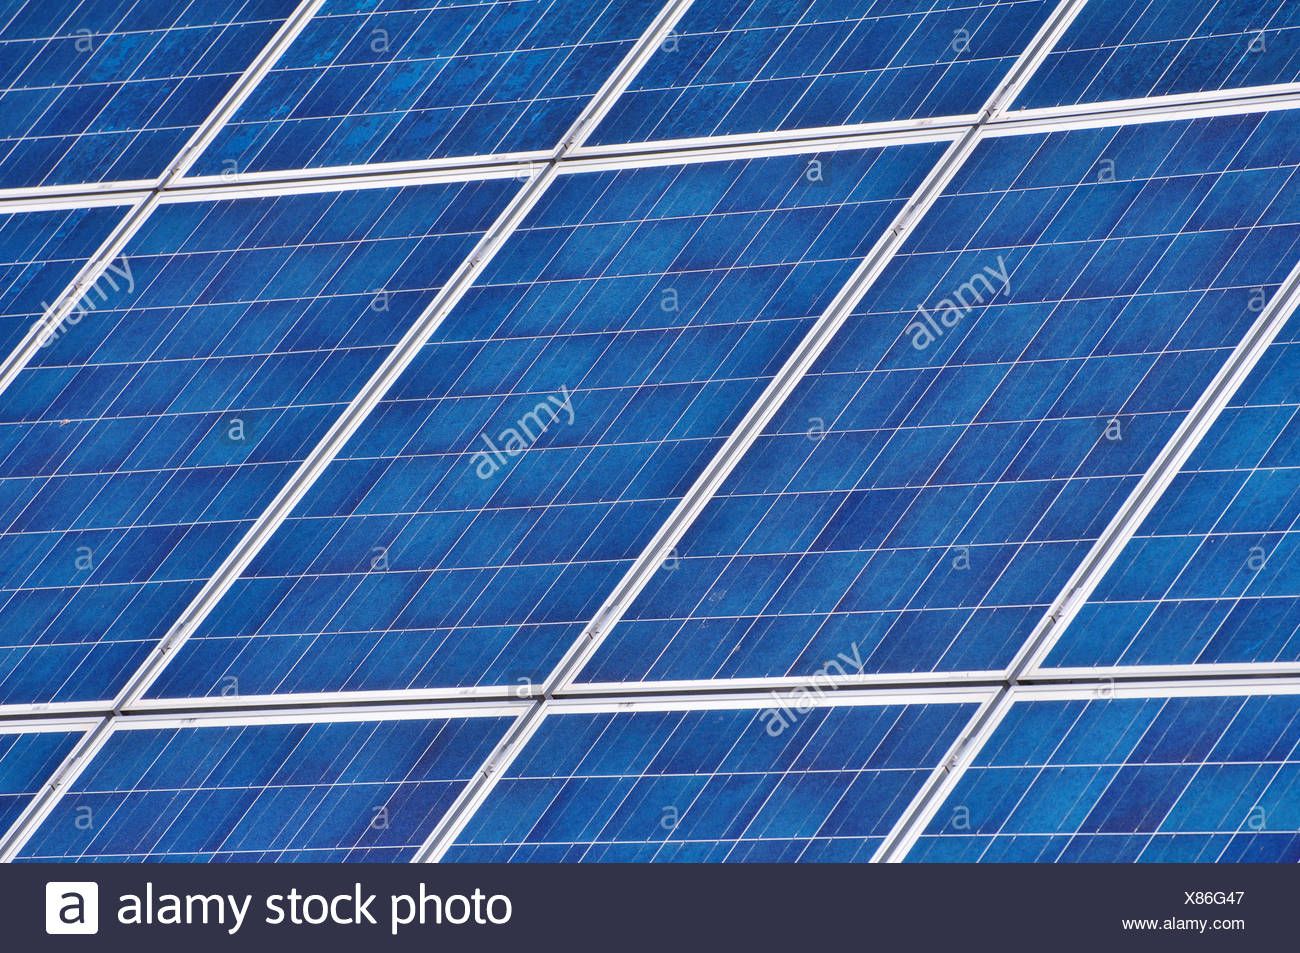 solar panels on a house roof - Stock Image